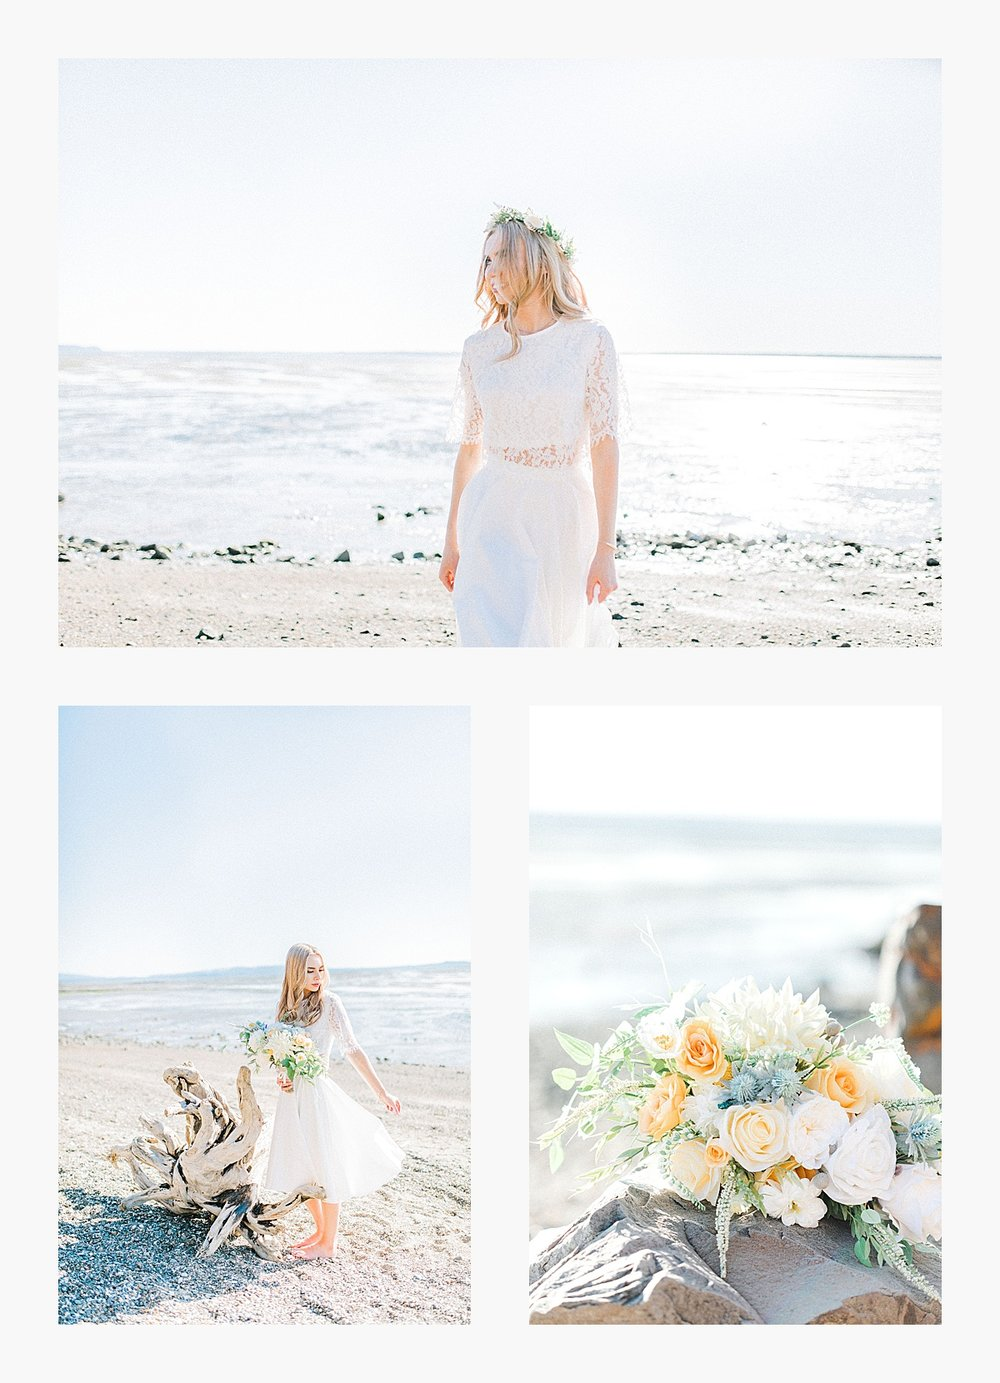 Styled bridal portraits on the beach in simple lace wedding skirt and lace top with Emma Rose Company.  Yellow and ivory inspired bridal shoot in the Pacific Northwest._0009.jpg